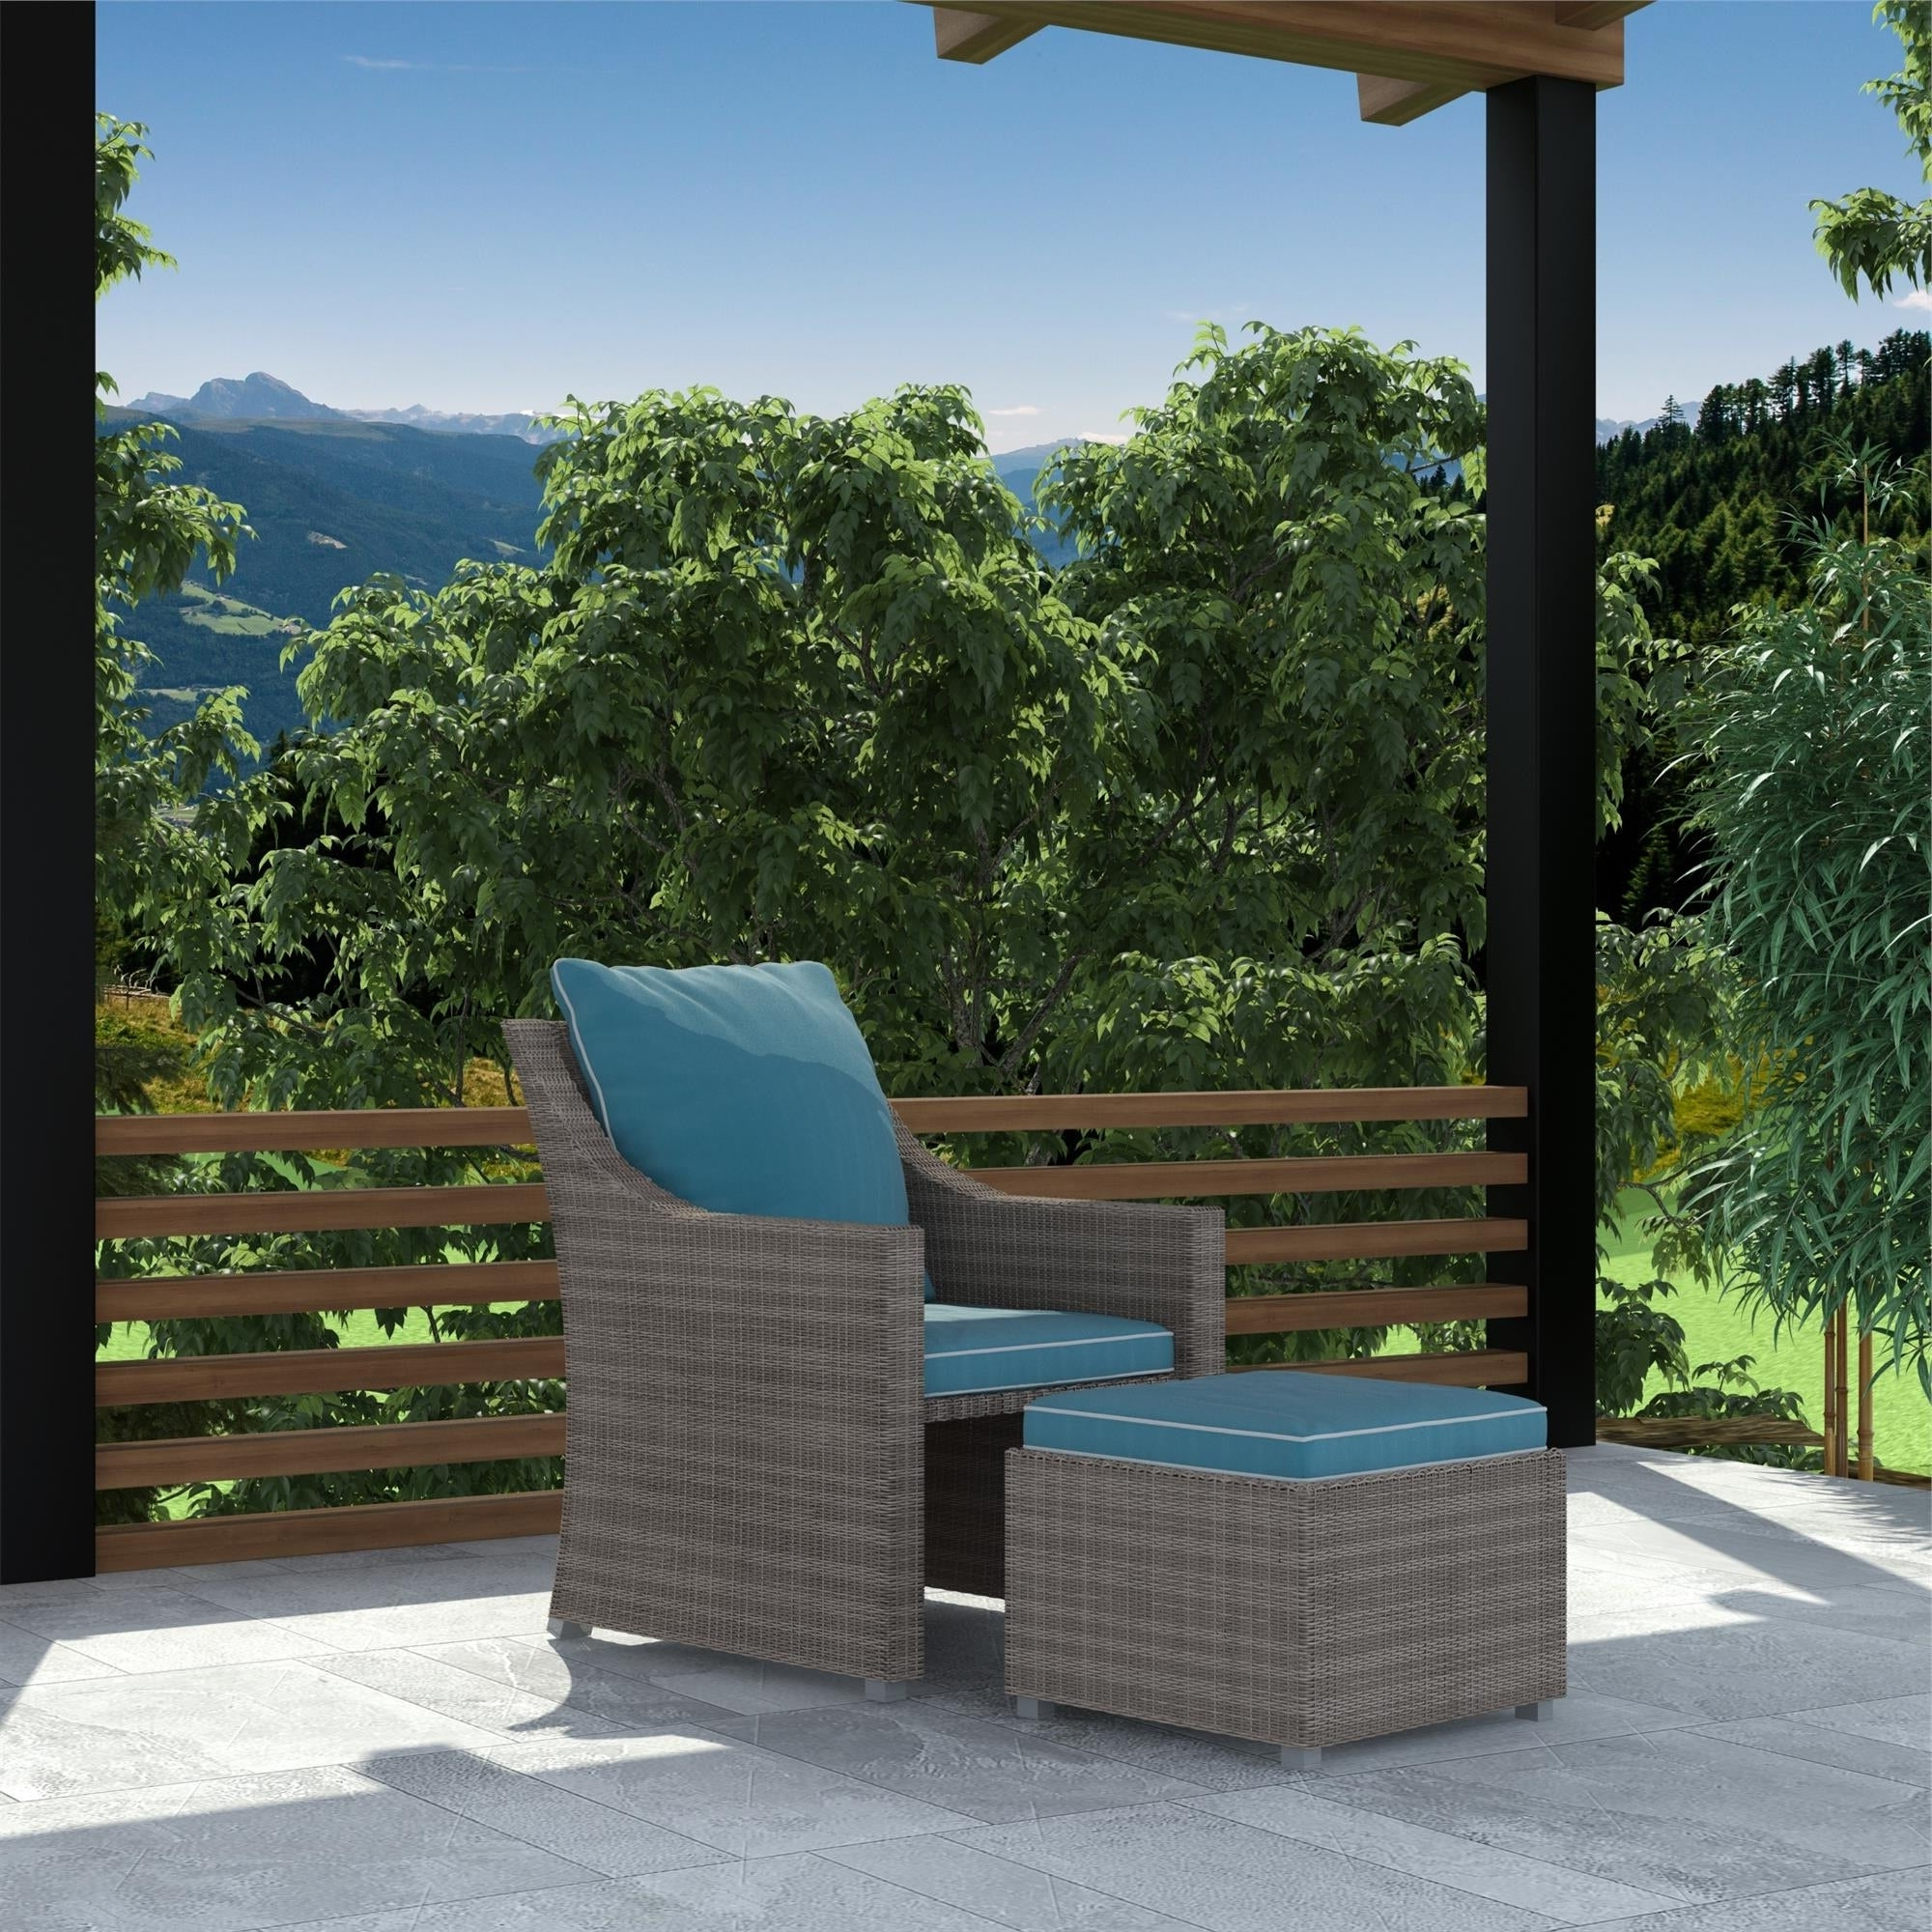 Outdoor Patio Lounge Chairs With Ottoman In Widely Used Cosco Outdoor Bluffs Grey 2 Piece Lounge Chair And Ottoman Patio Set (View 21 of 25)